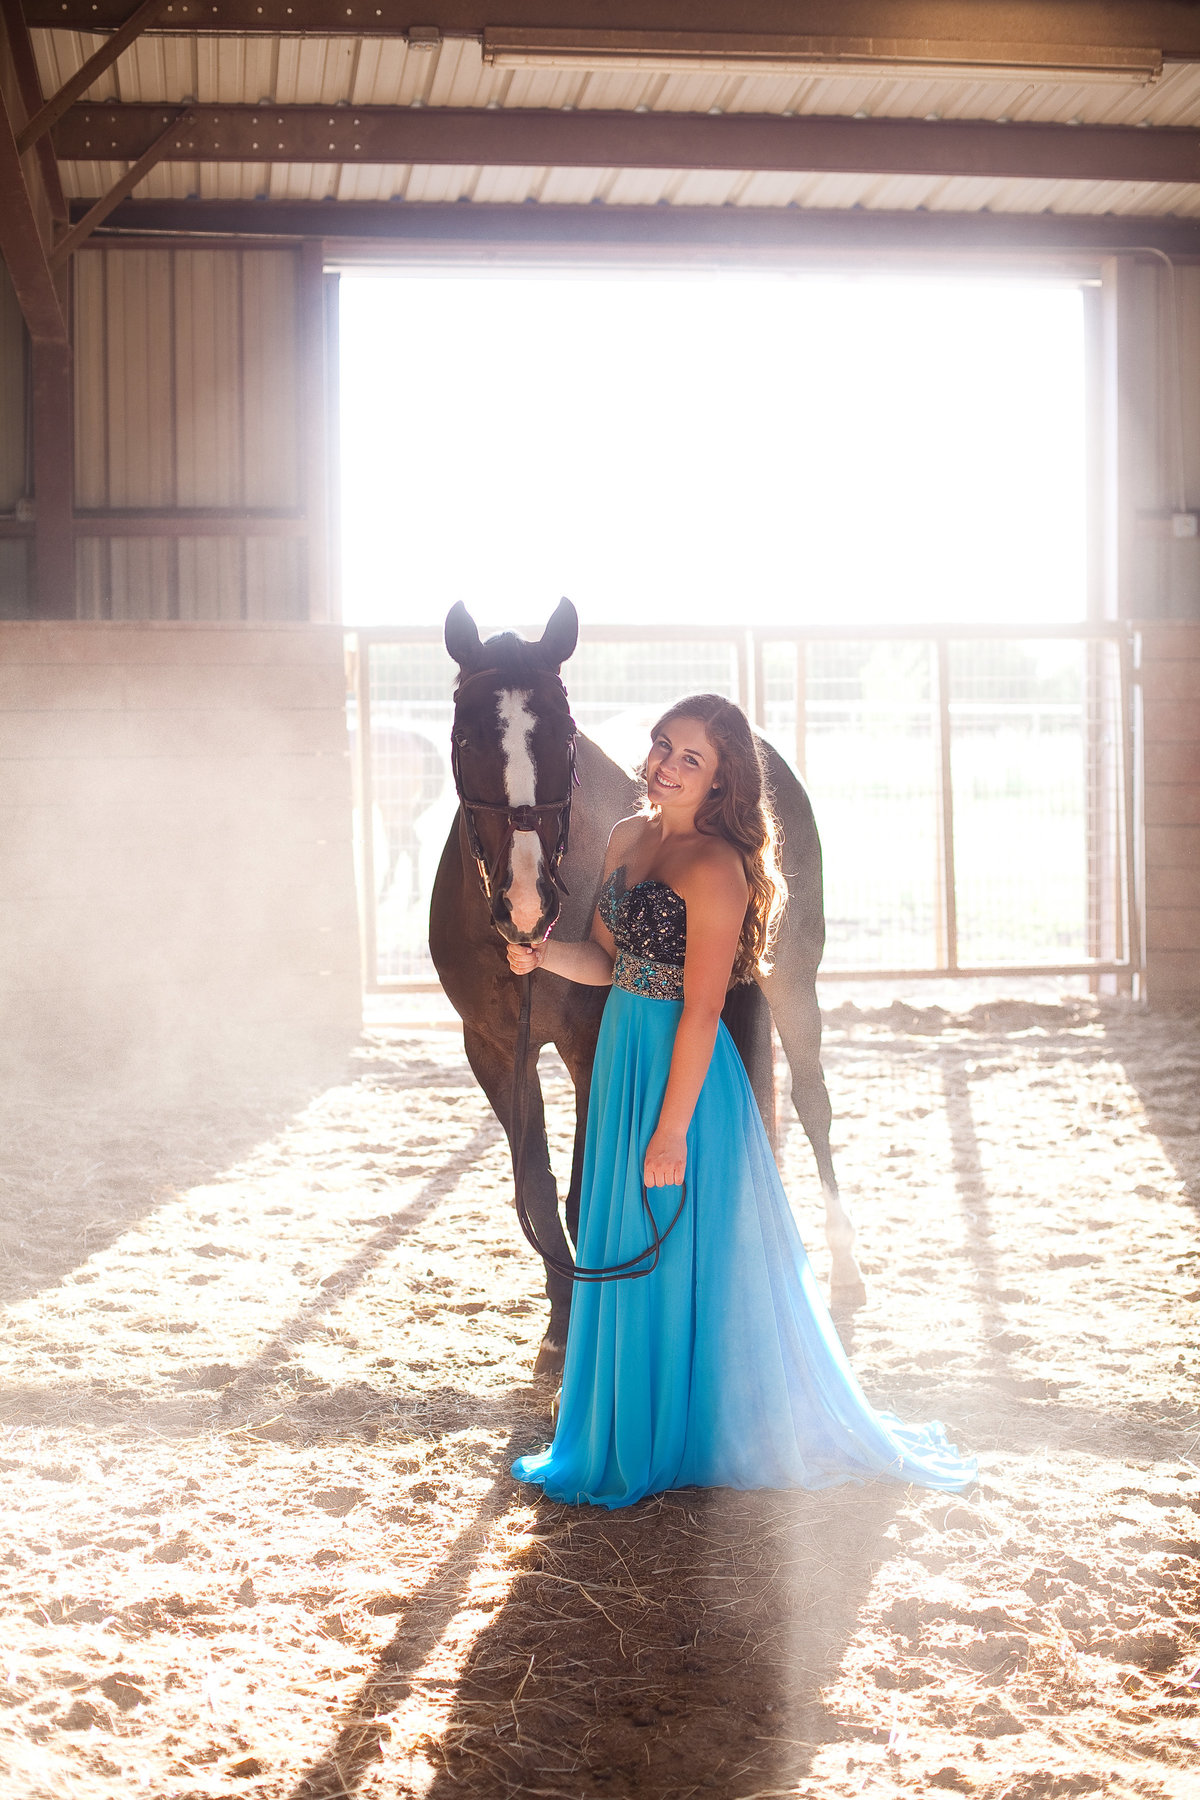 Senior Picture of girl in blur formal dress with horse in barn at sunset